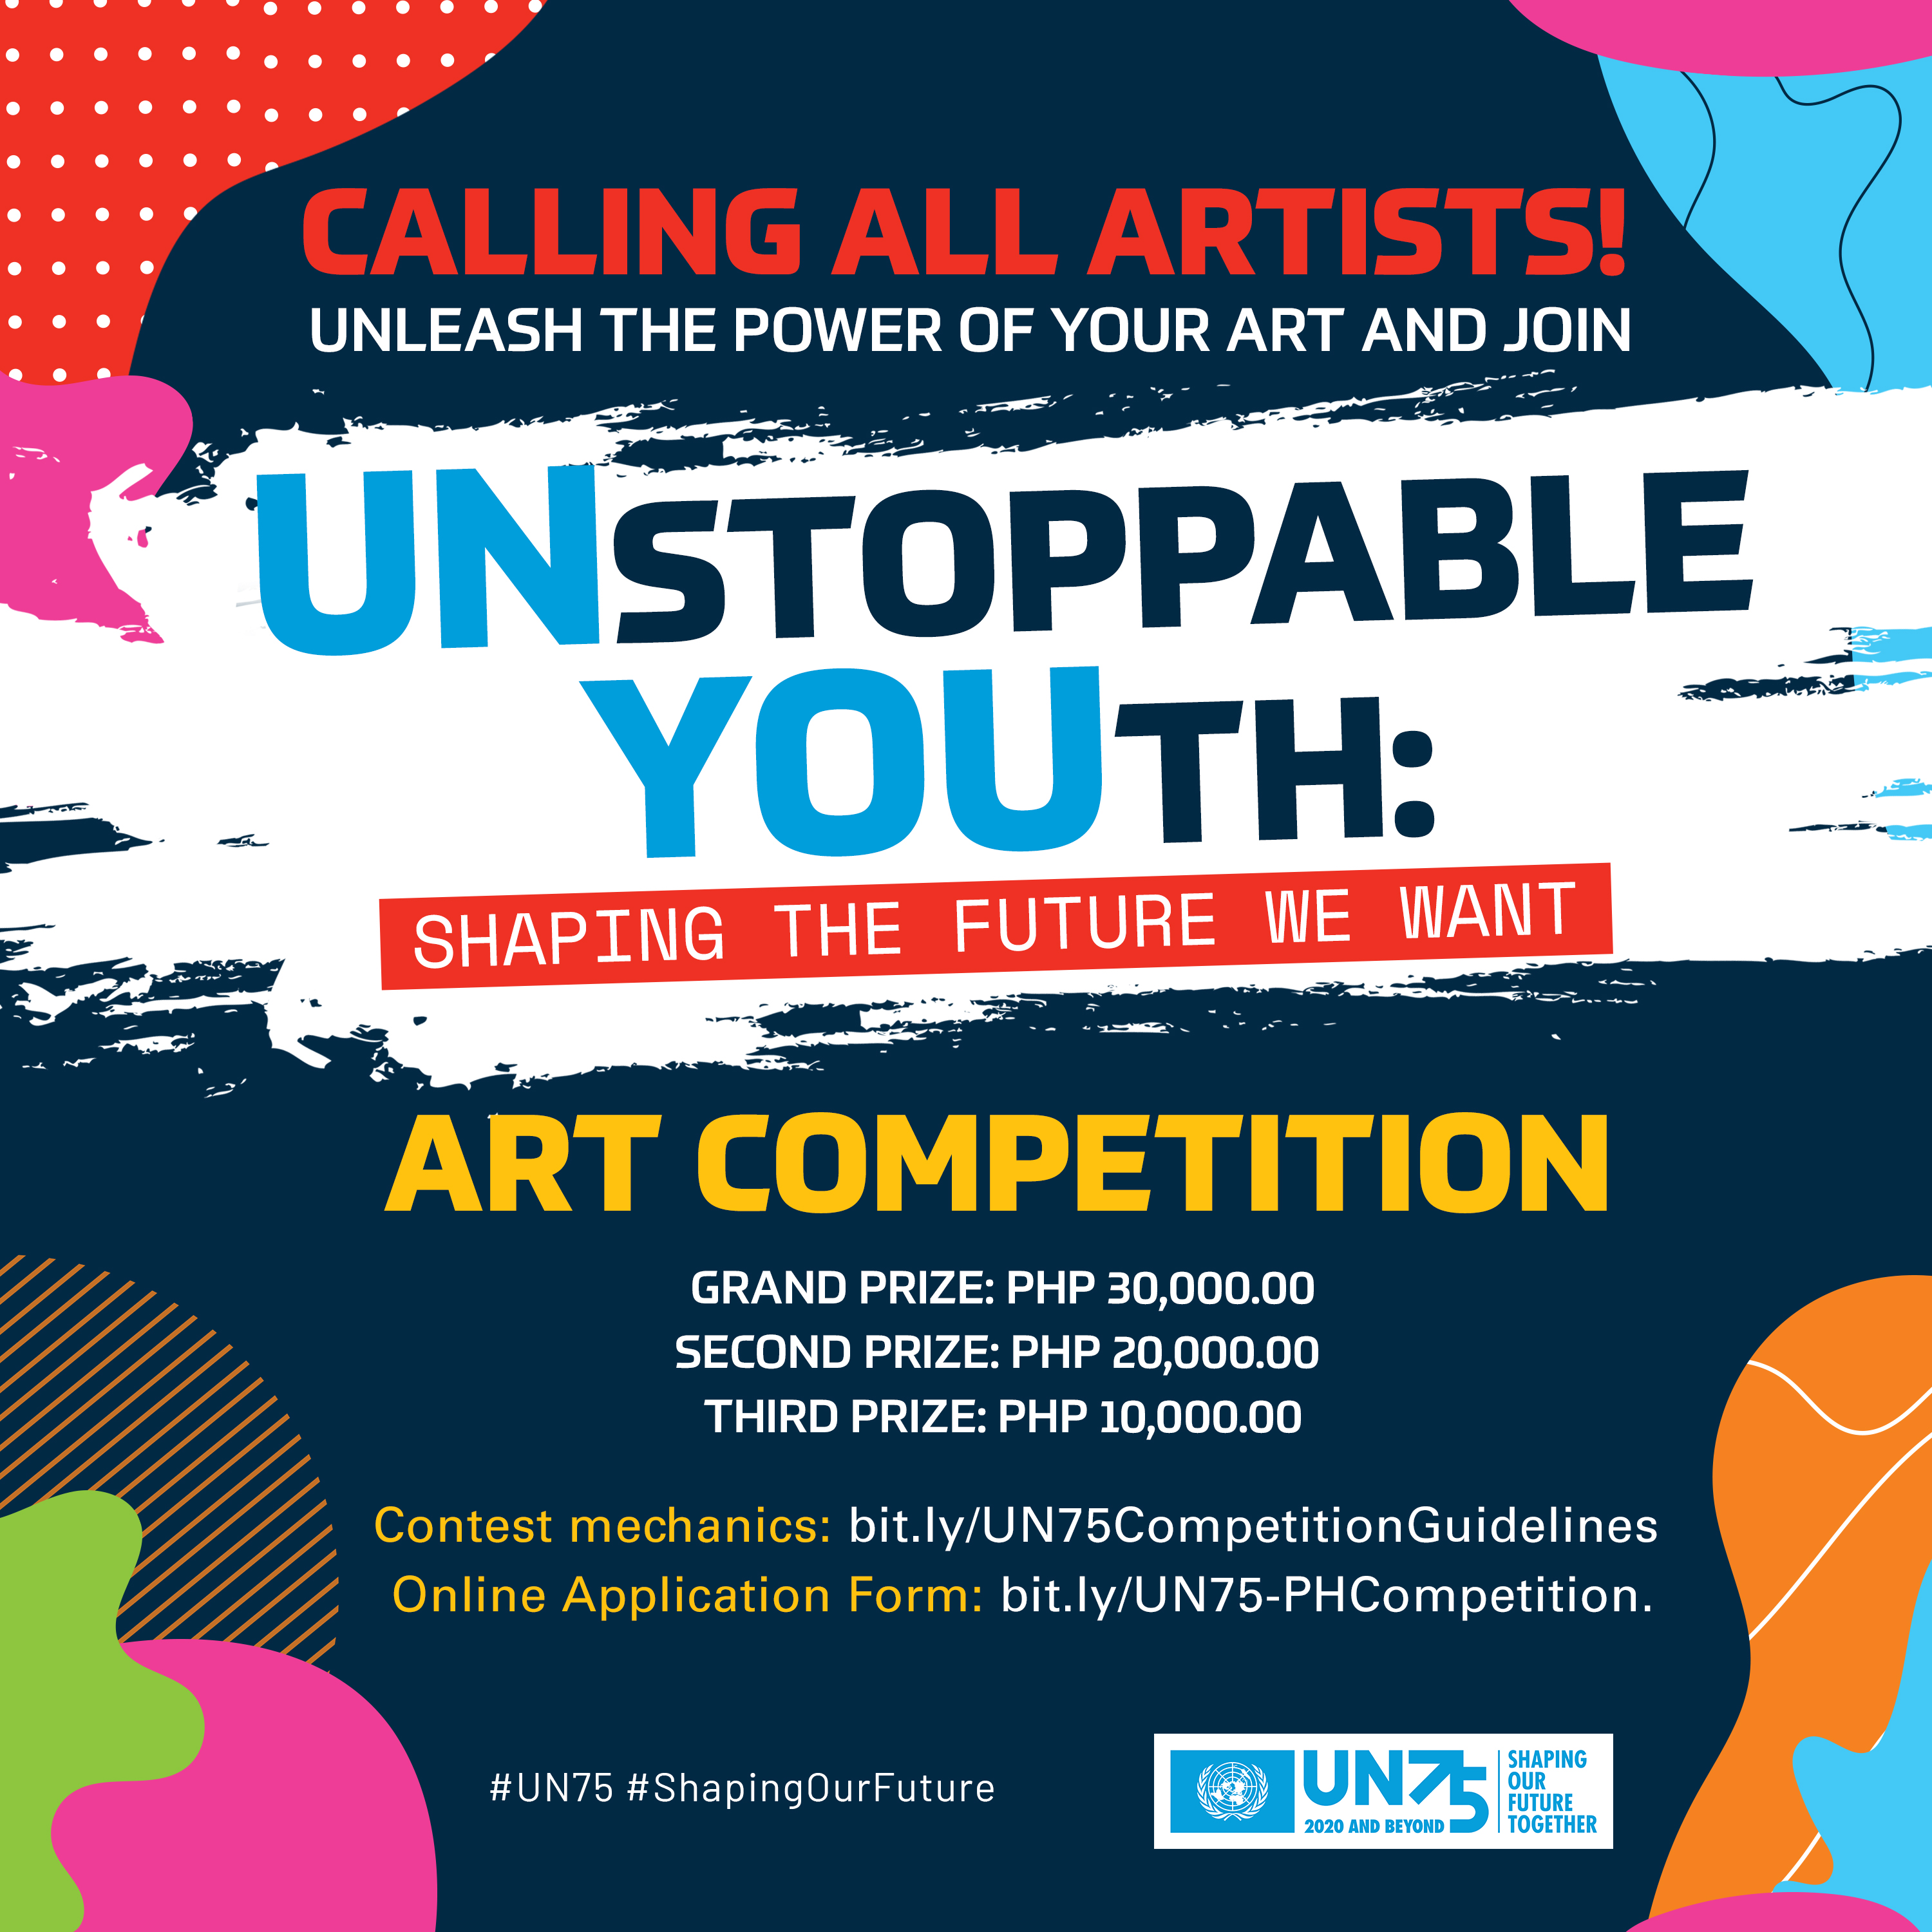 UNStoppable YOUth: Shaping the Future We Want